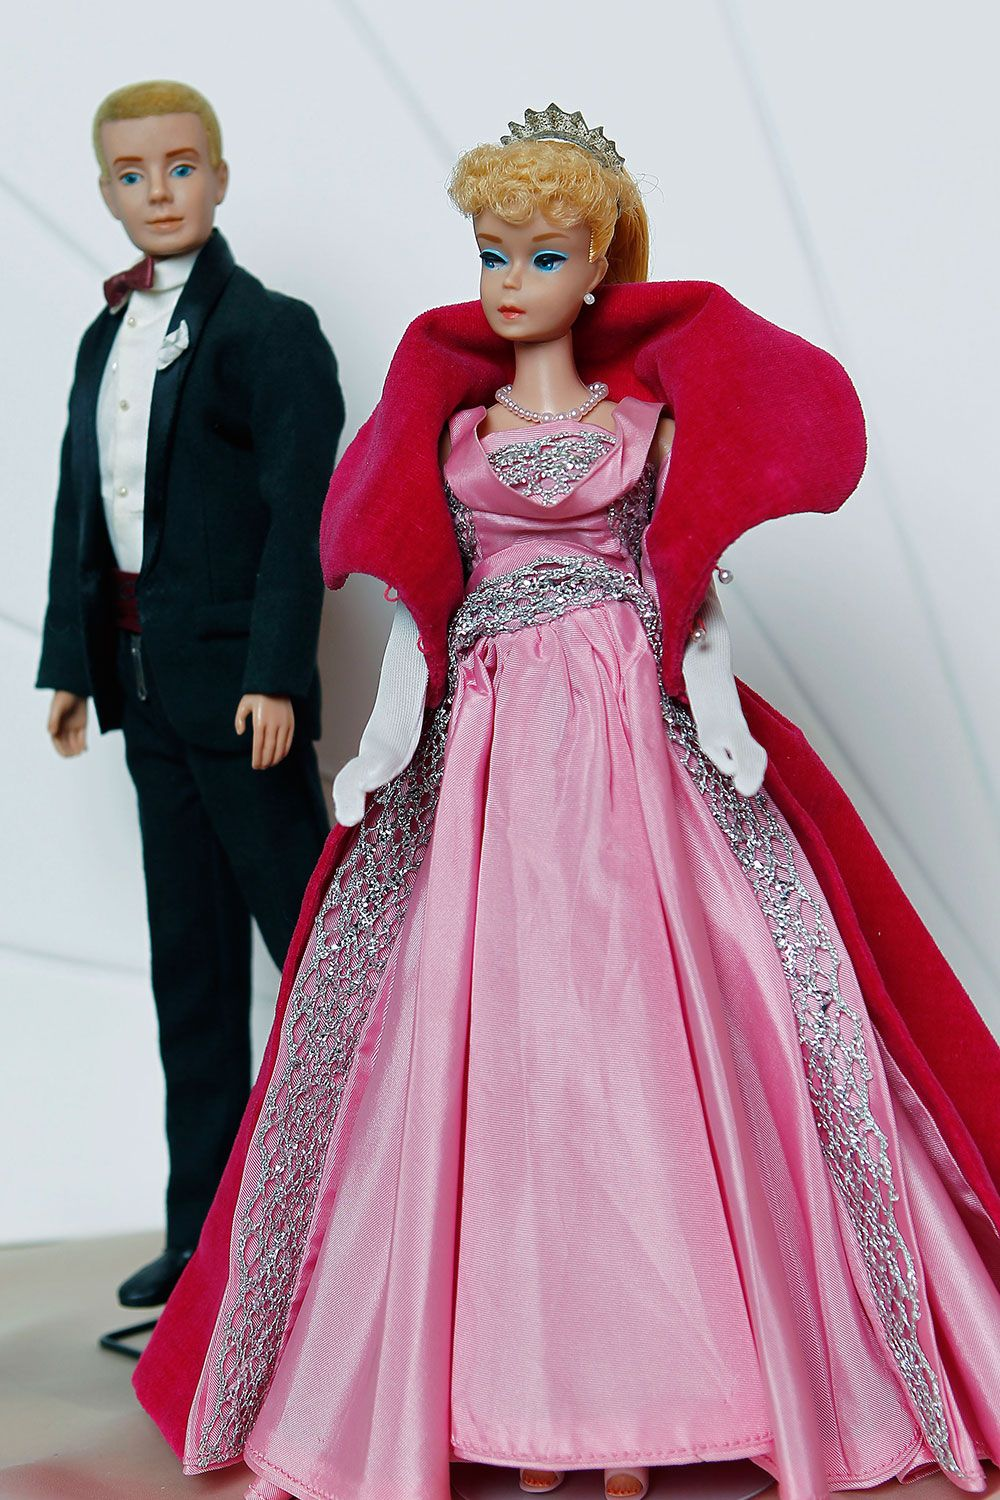 85714857947a68 40 Barbie Doll Facts - History and Trivia About Barbies